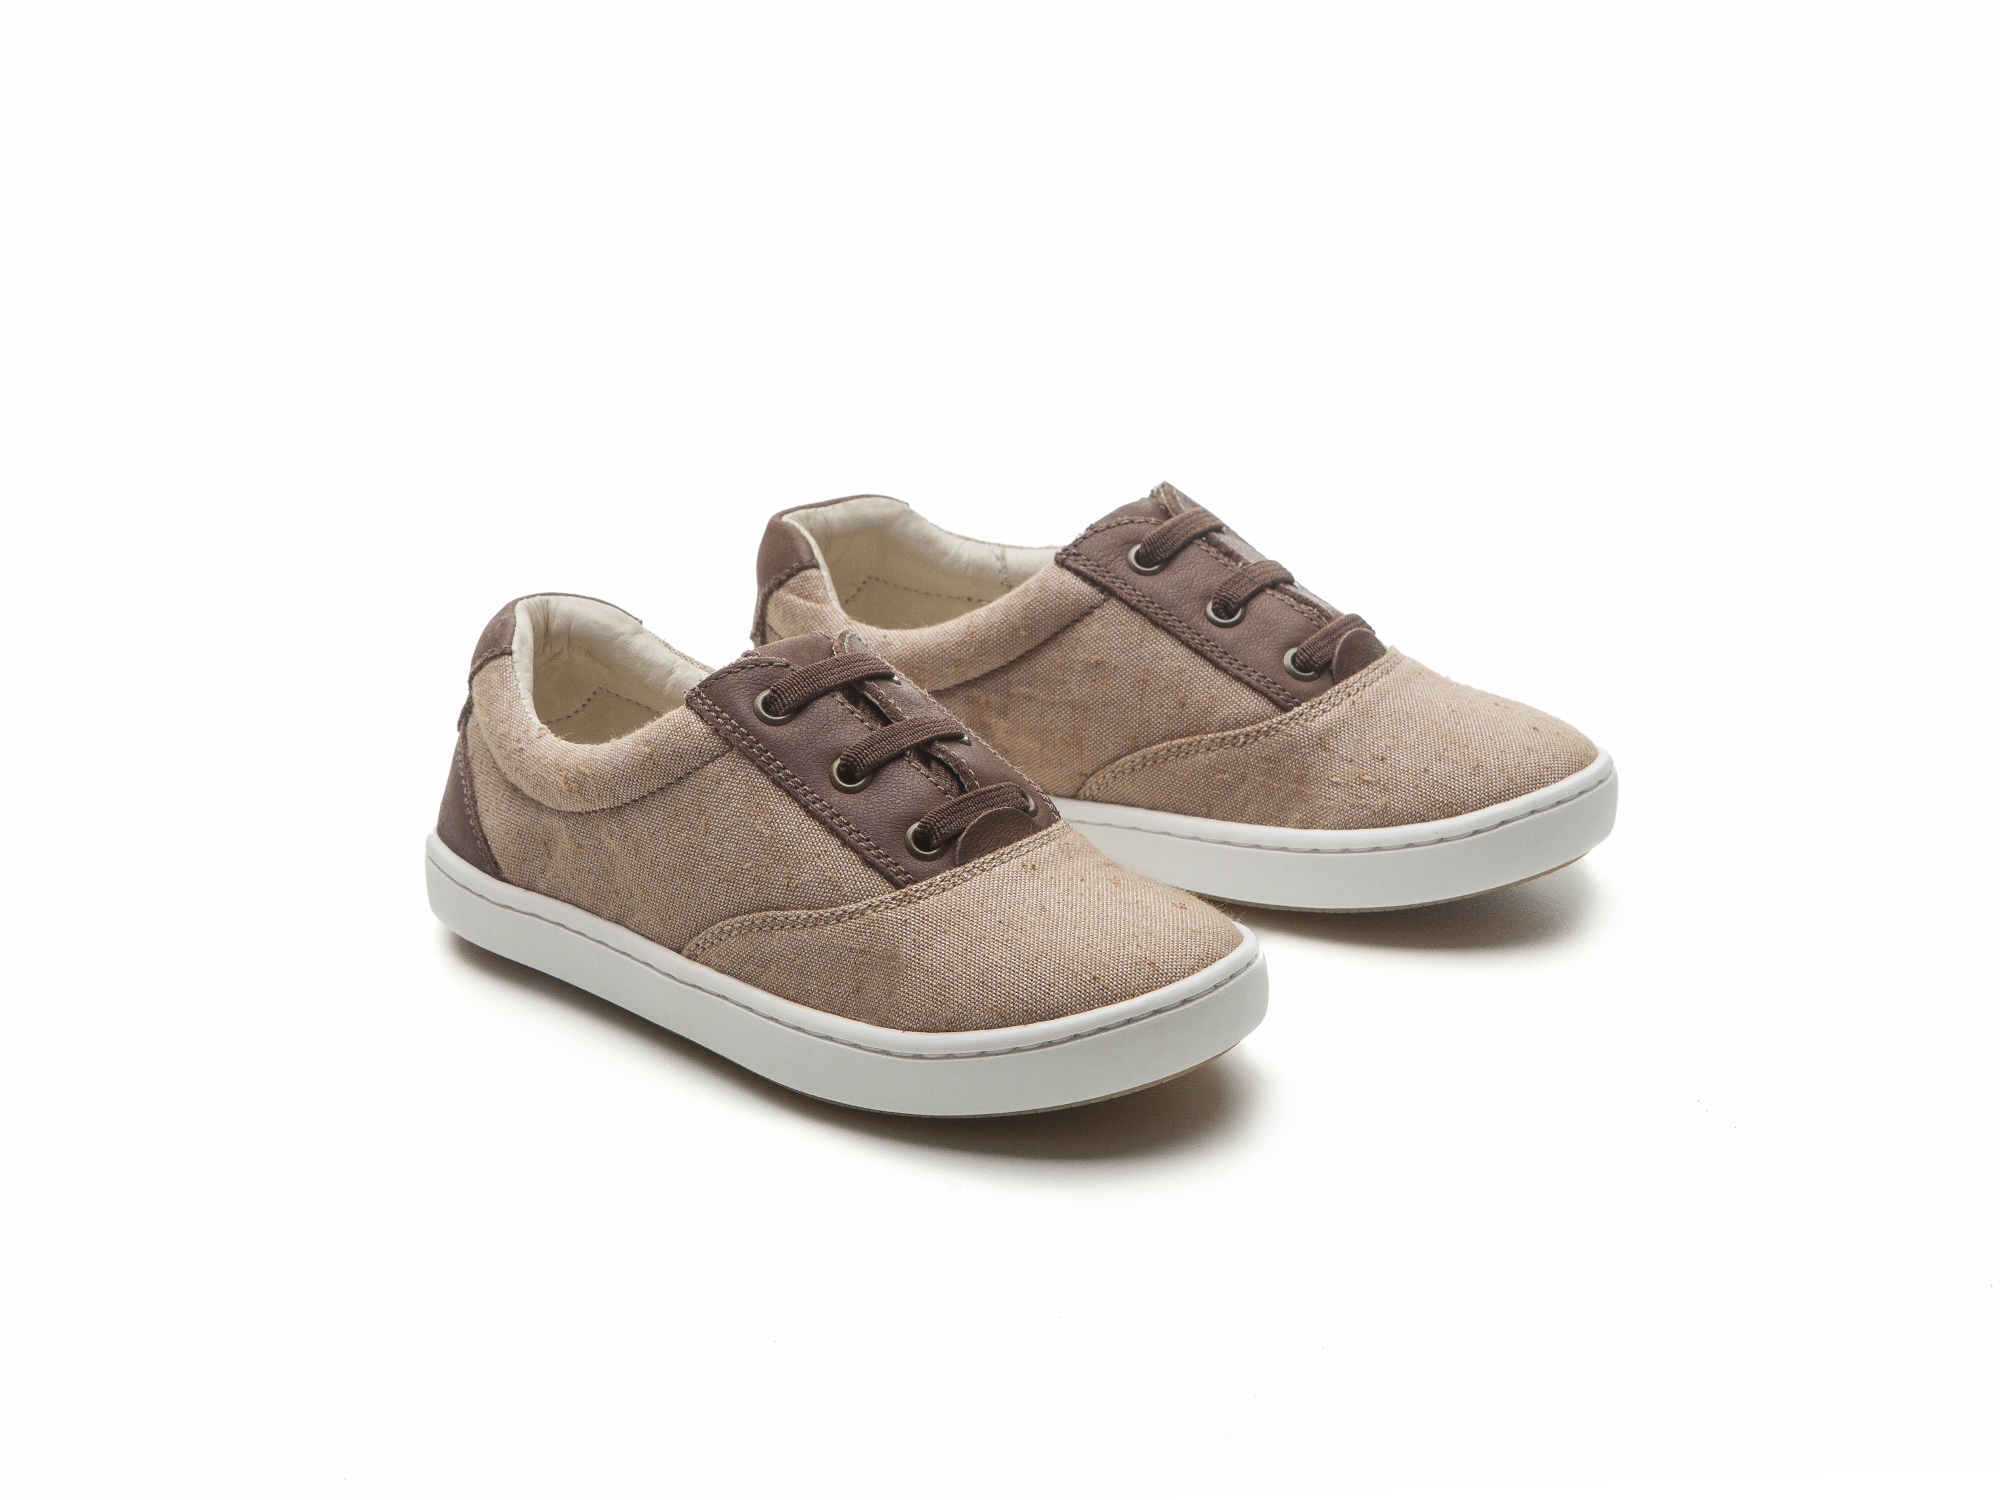 Tênis T Garb Kraft Canvas/ Old Brown Toddler 2 à 4 anos - 0